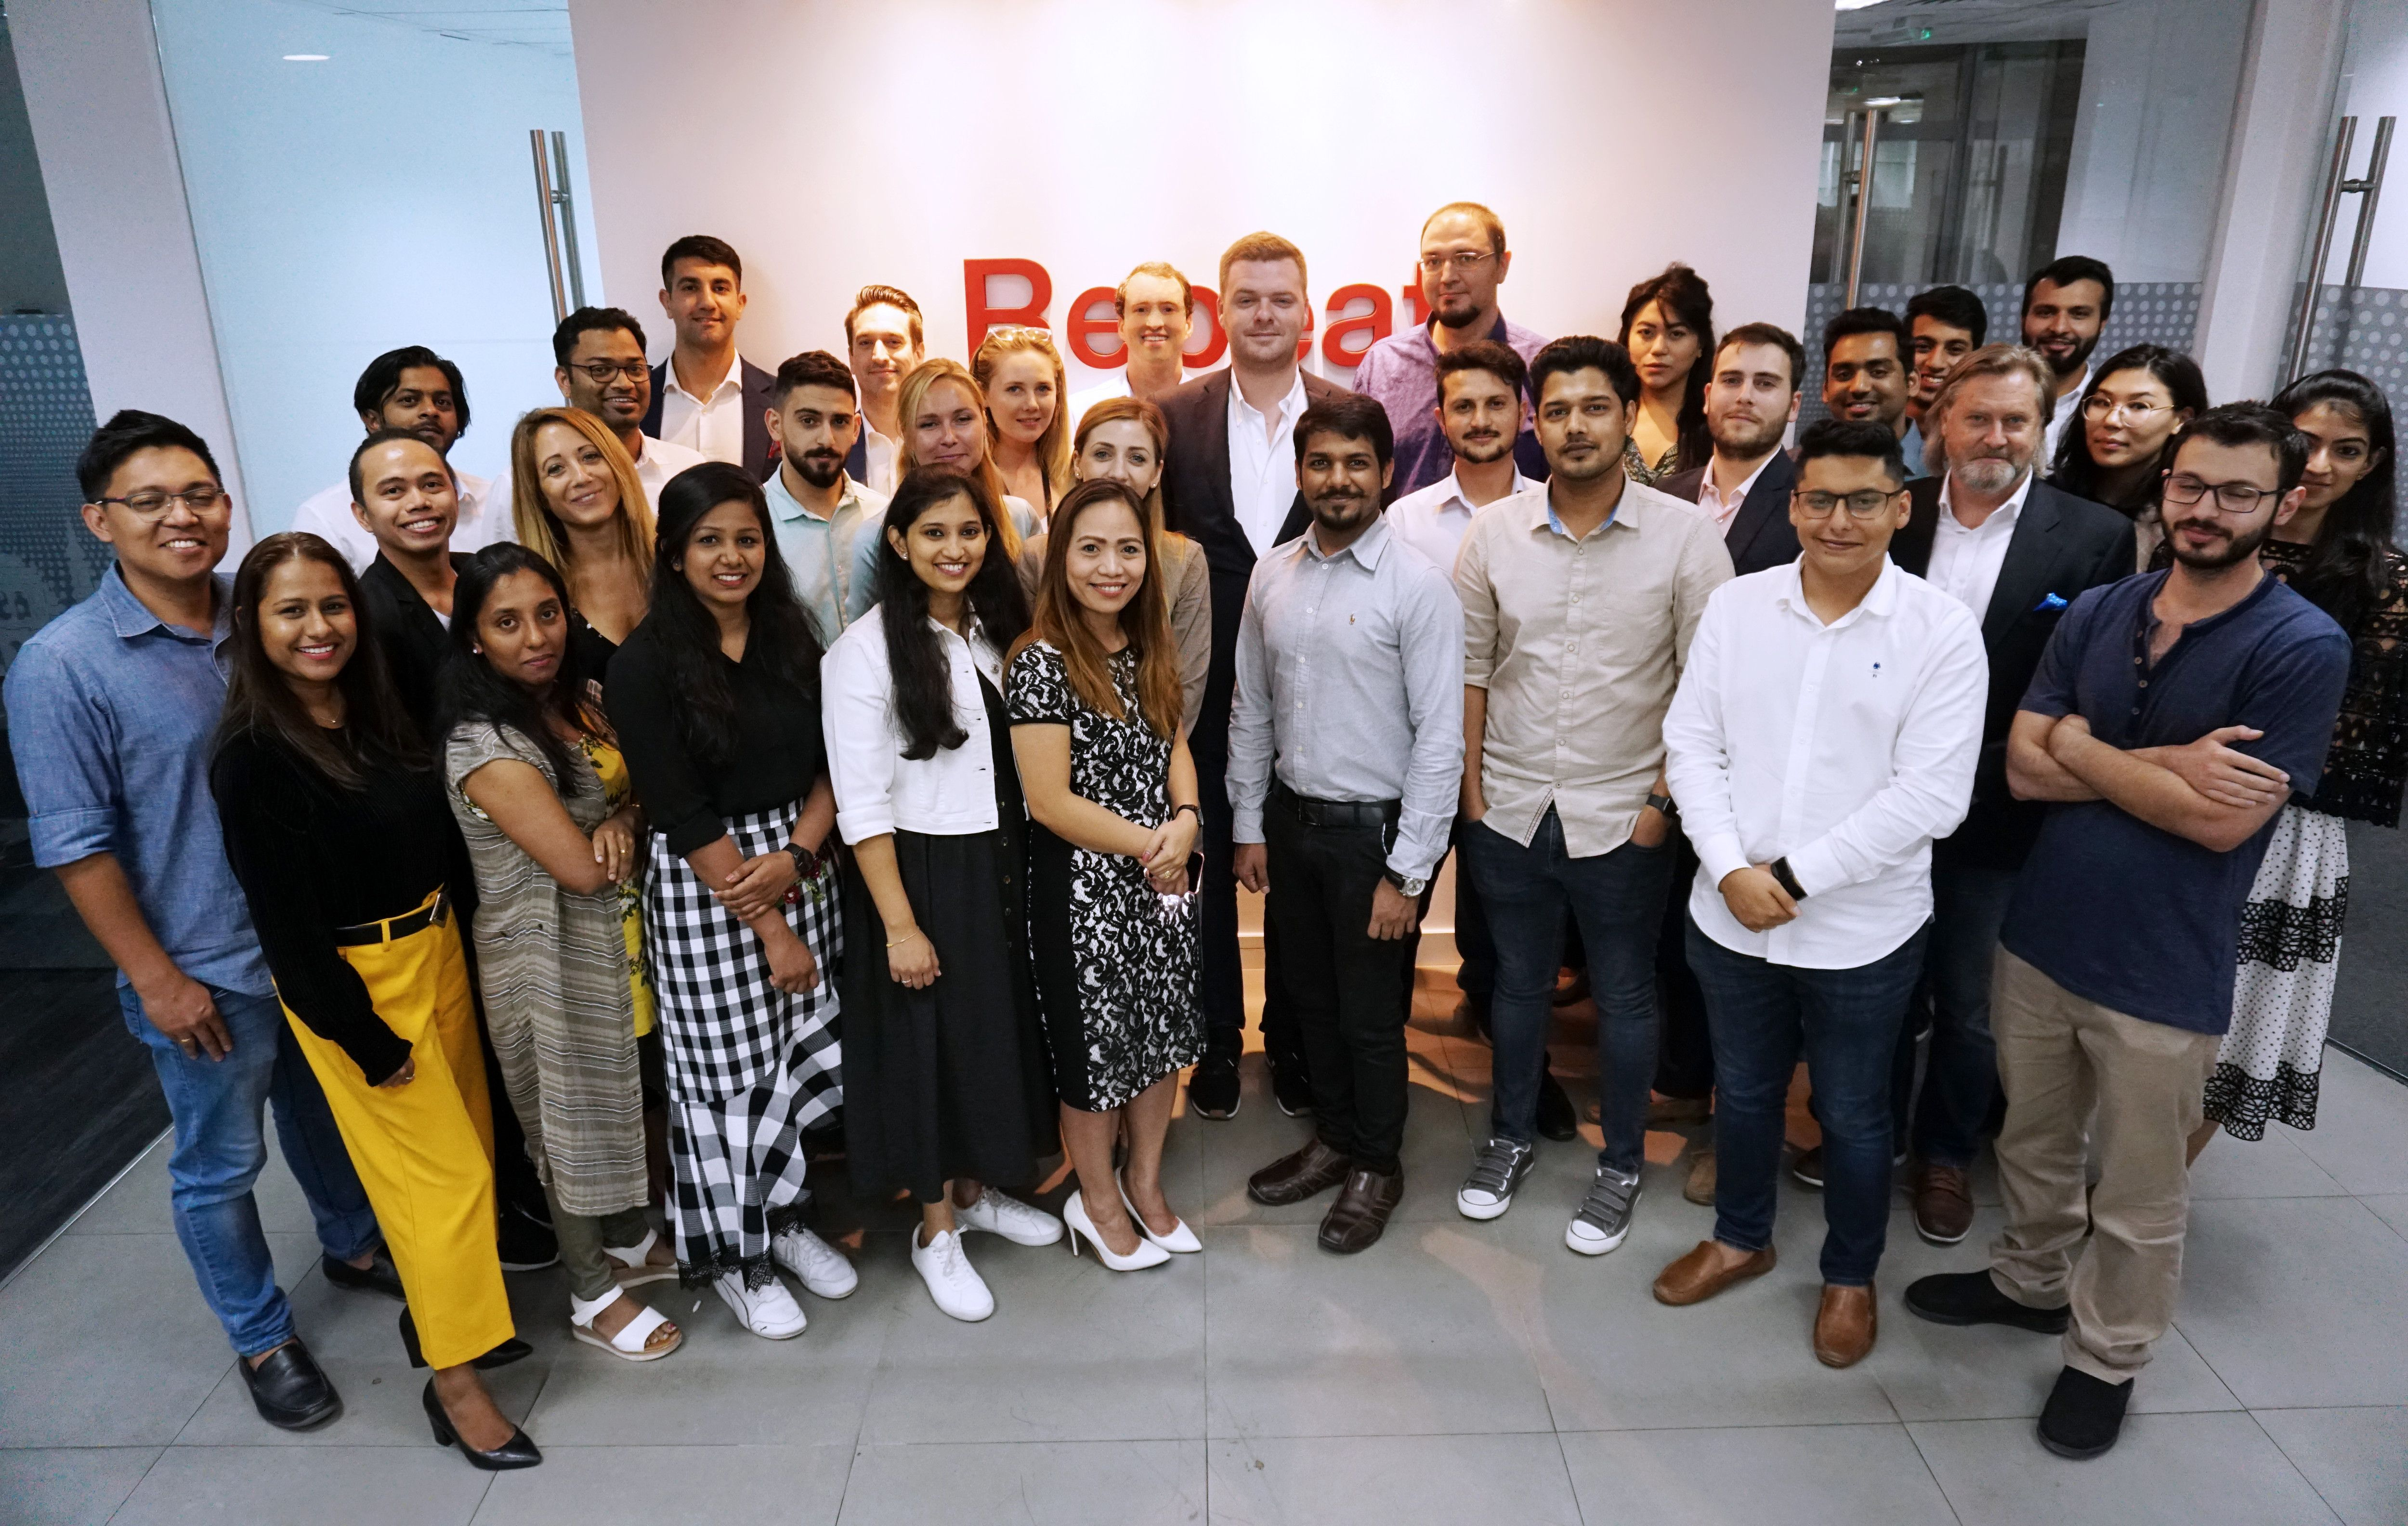 Repeat raises $2.5 million in Series A funding